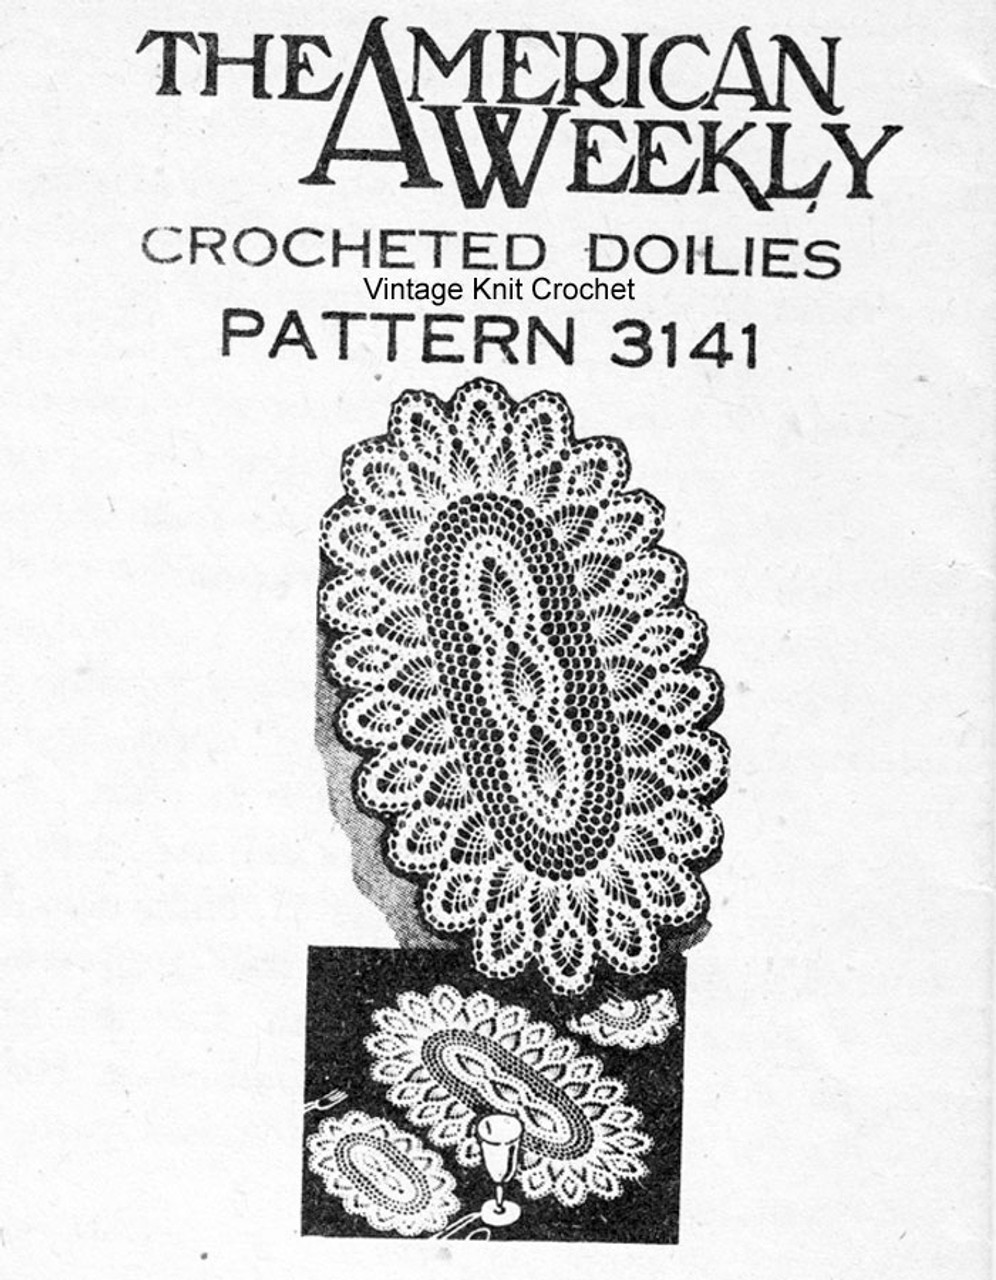 Oval Crochet Luncheon Set Pattern American Weekly 3141